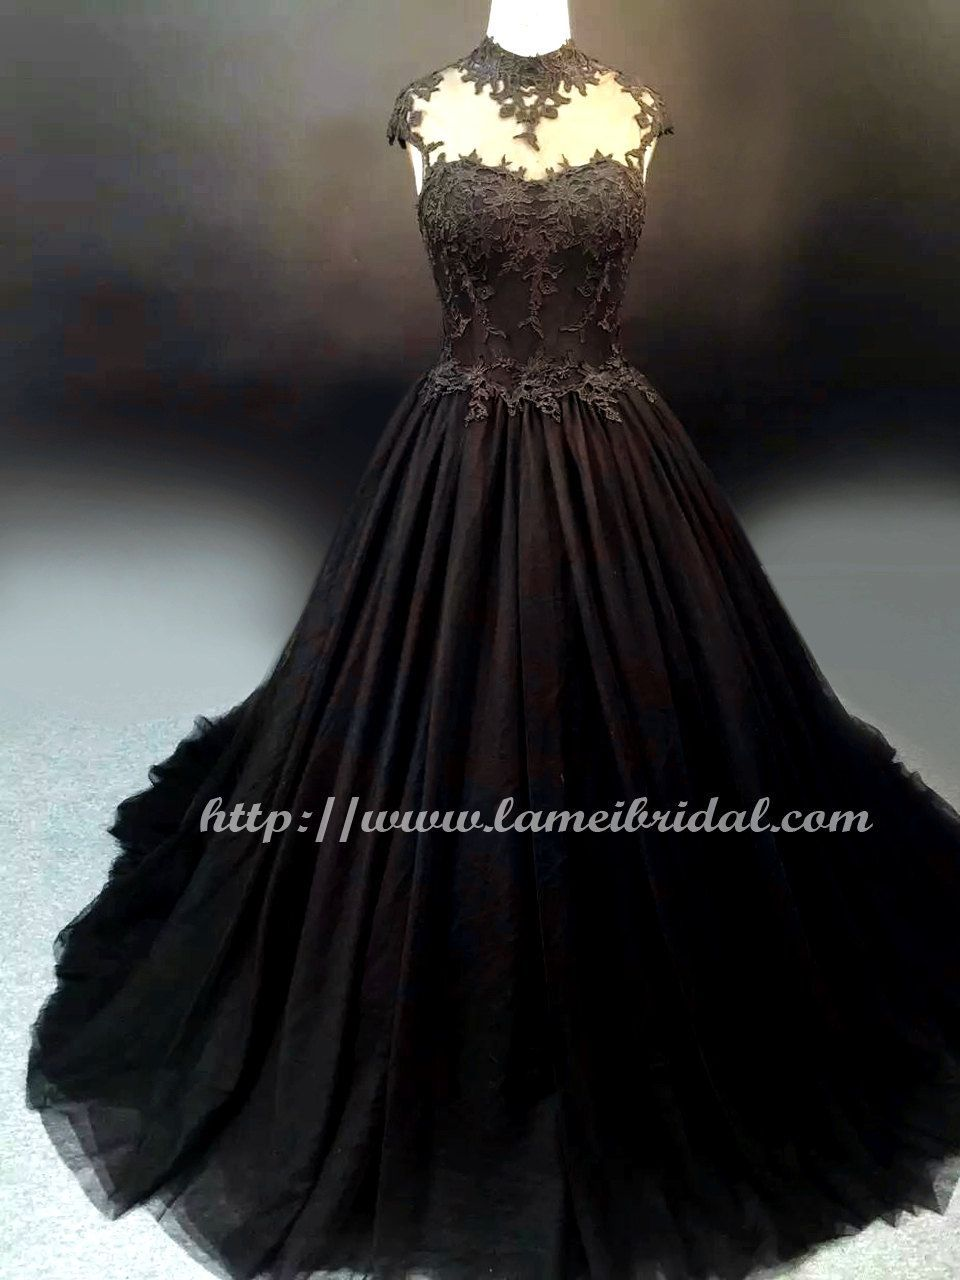 Gothic Style Black High Neck Wedding Bridal Dress Ball Gown Black Lace Ballgown Ys19188078 By Lam Black Wedding Dresses Gothic Wedding Dress Ball Dresses [ 1280 x 960 Pixel ]